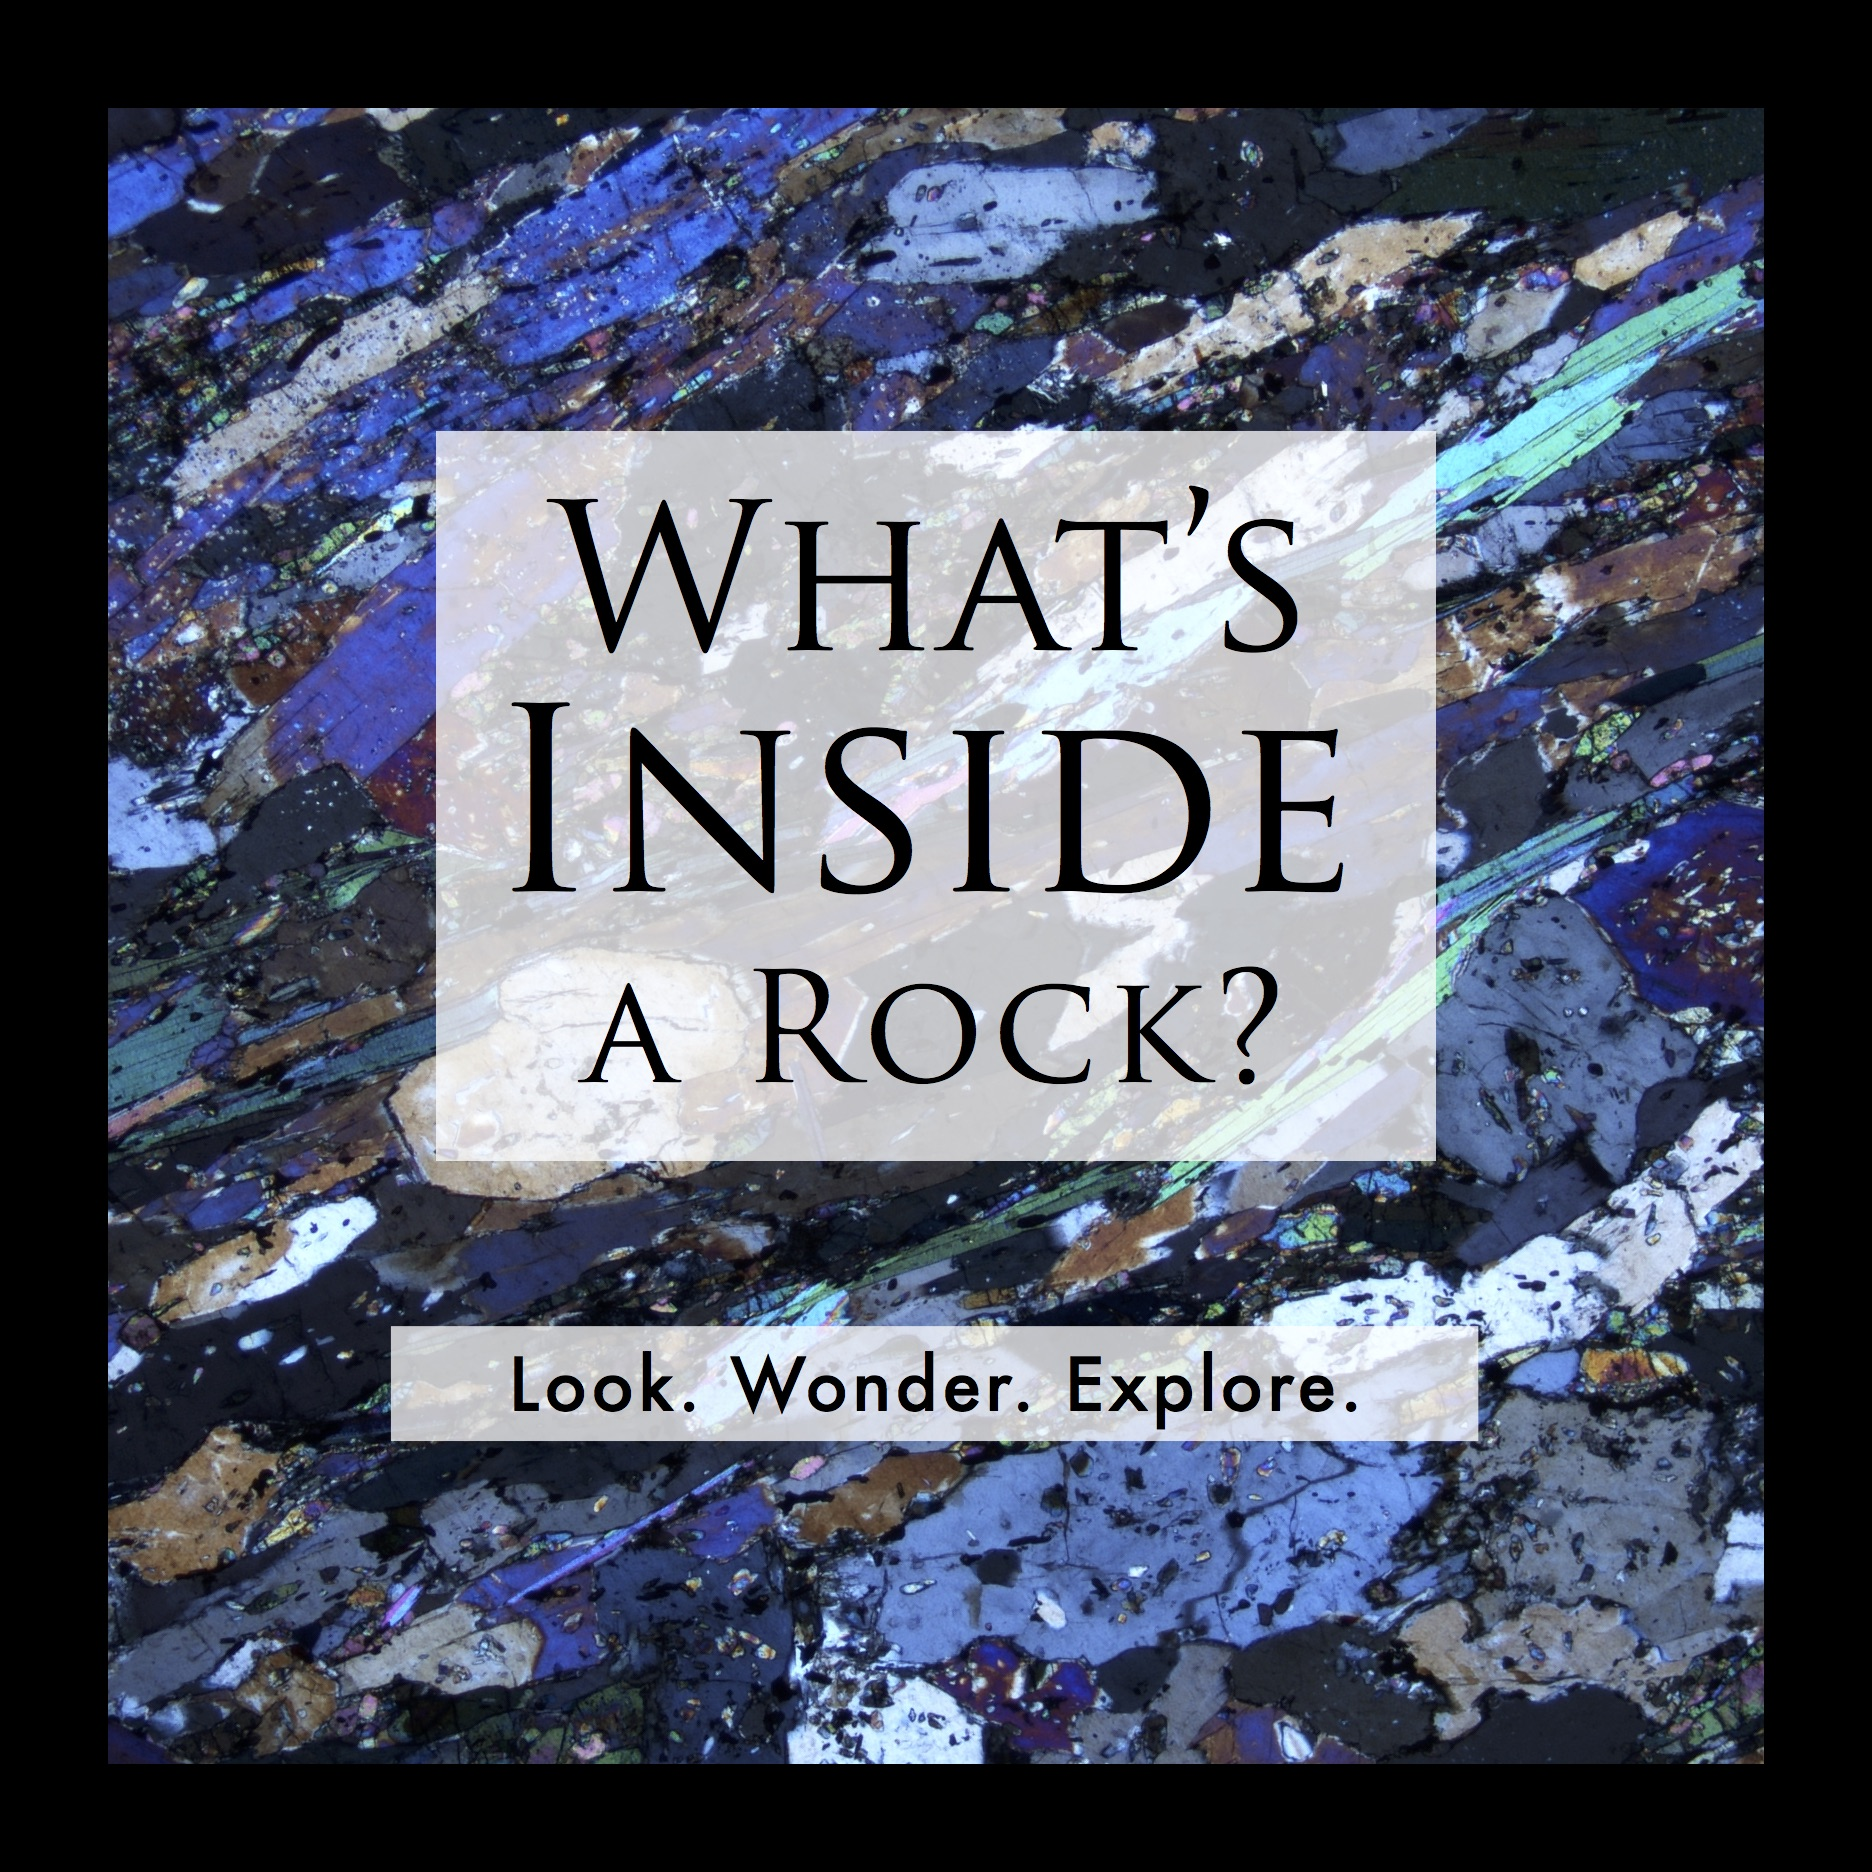 What's inside a rock?